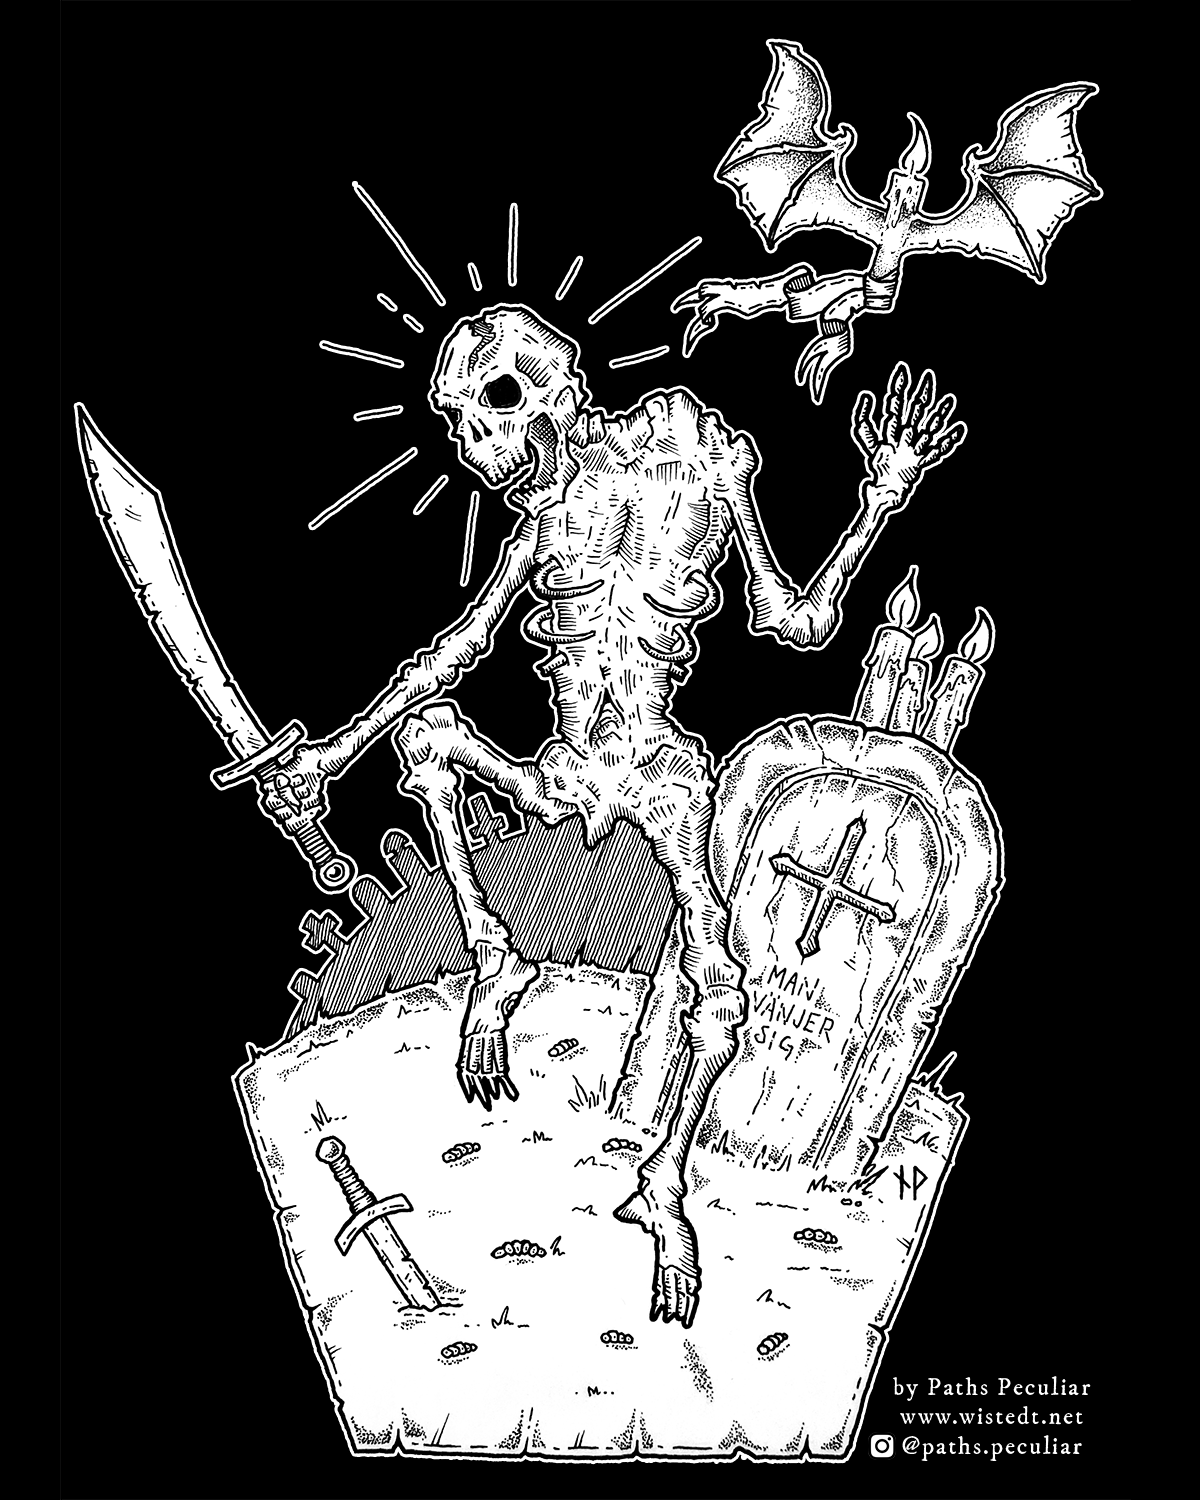 Danse Macabre – dancing skeleton in graveyard